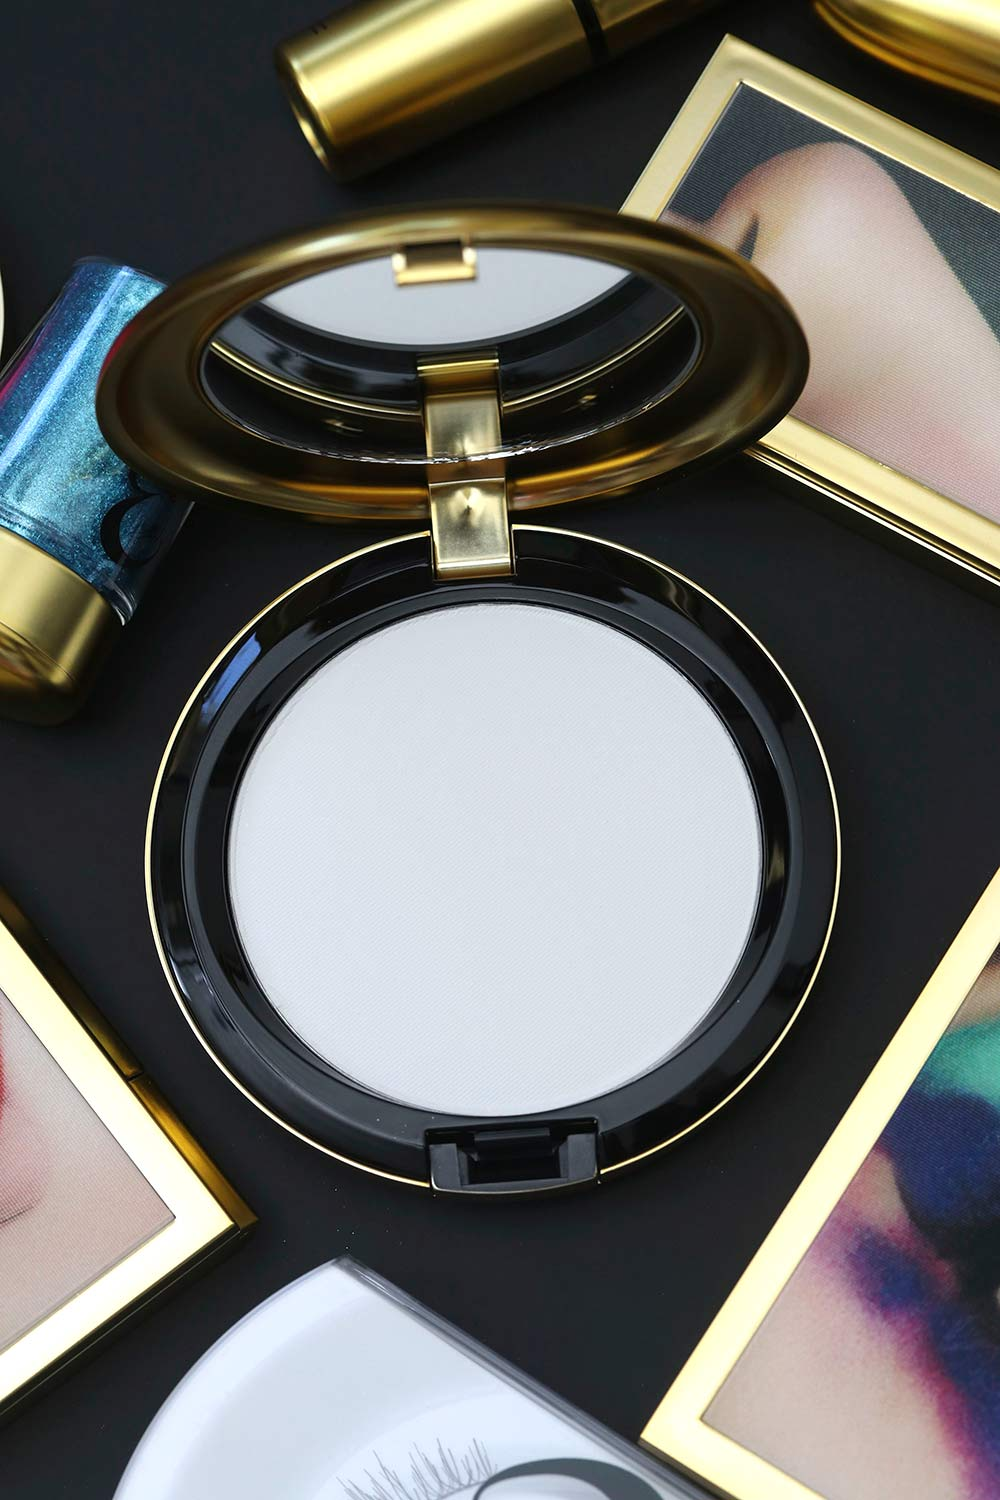 mac rossy de palma prep prime transparent finishing powder